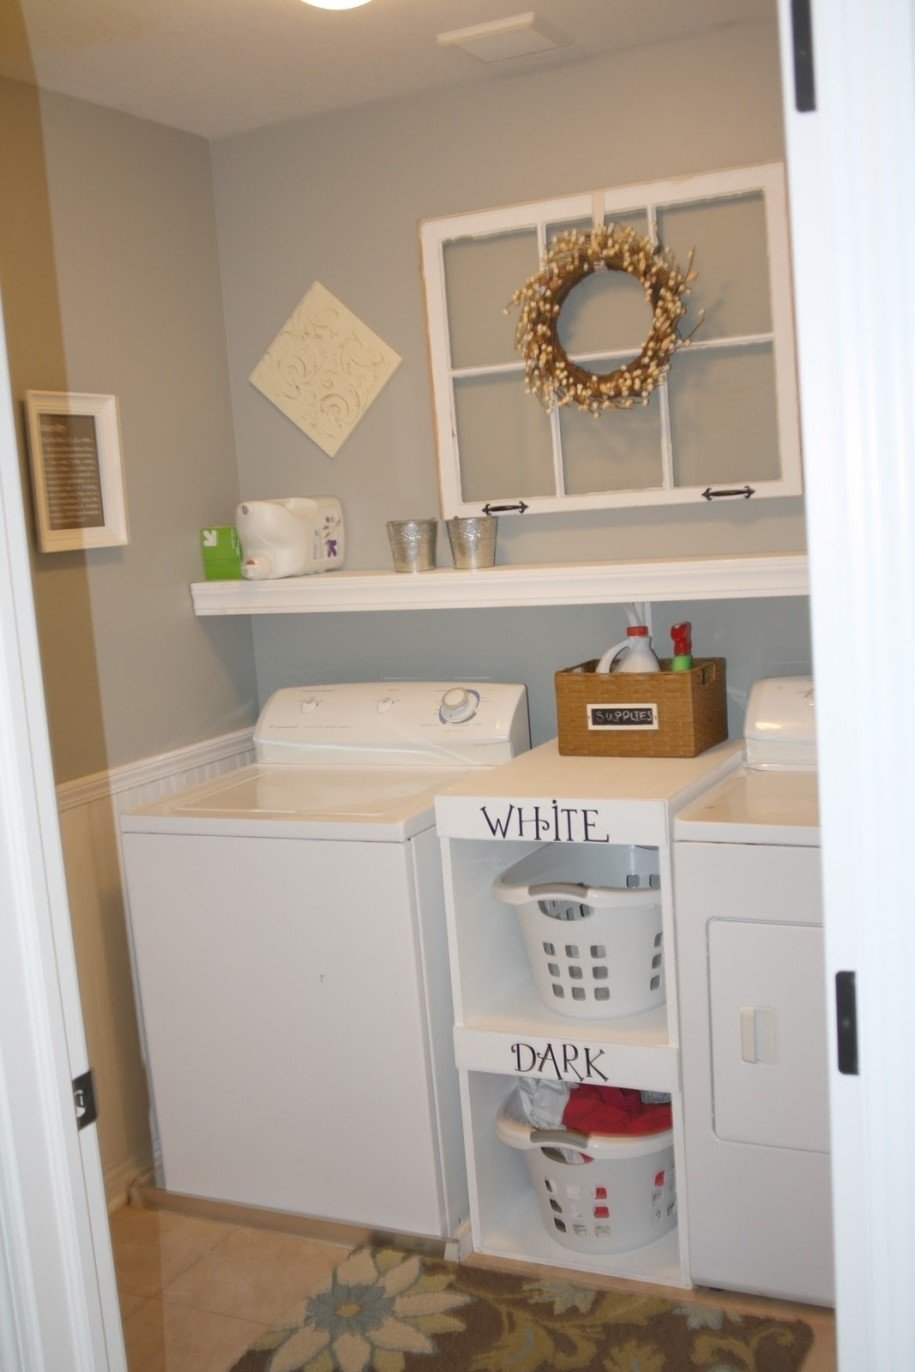 10 Perfect Laundry Room Ideas Small Space small laundry room ideas in style home design and architecture